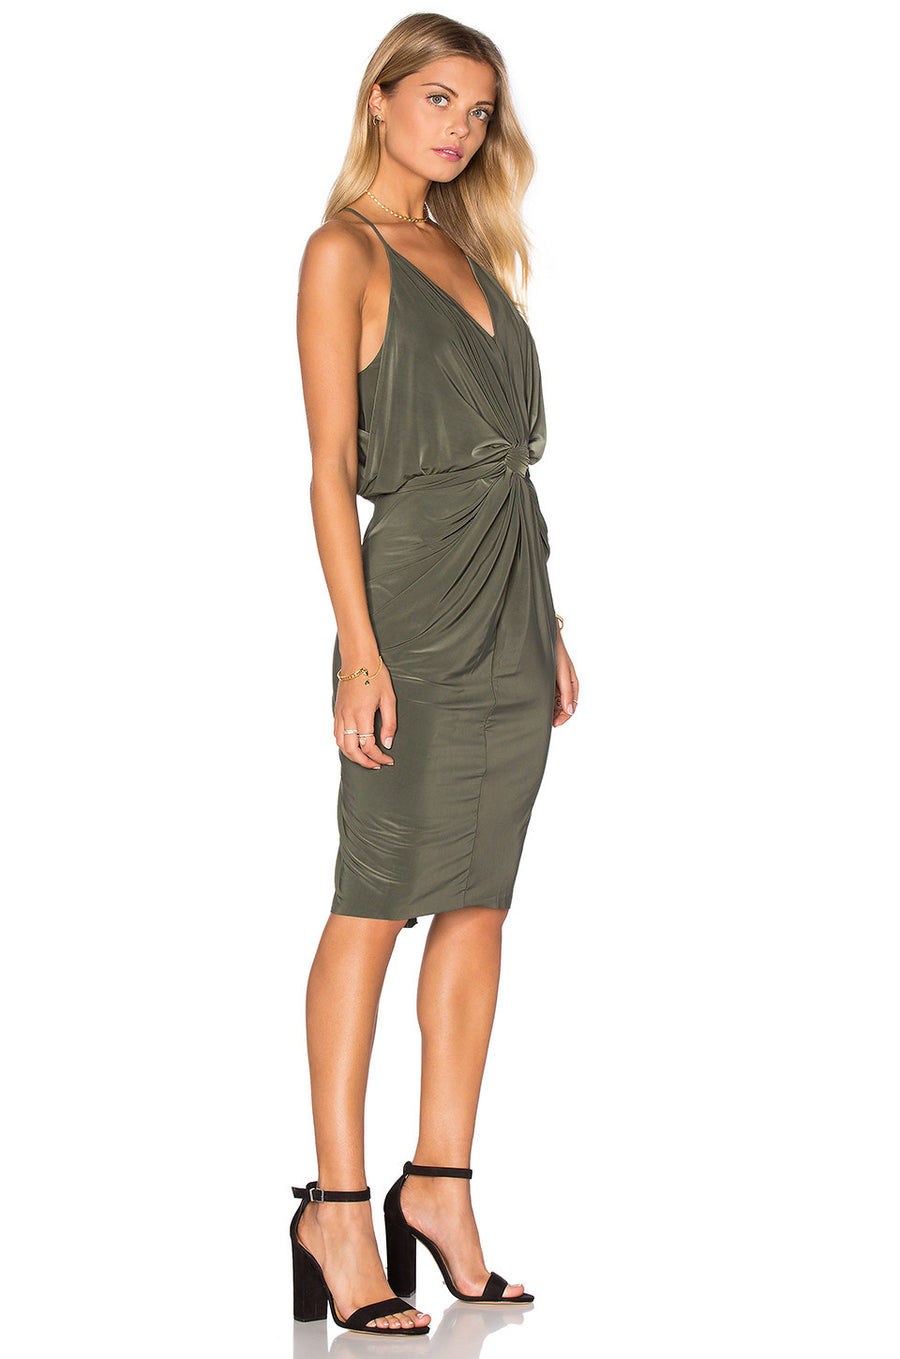 Domino Midi Dress - Olive - Pavilion